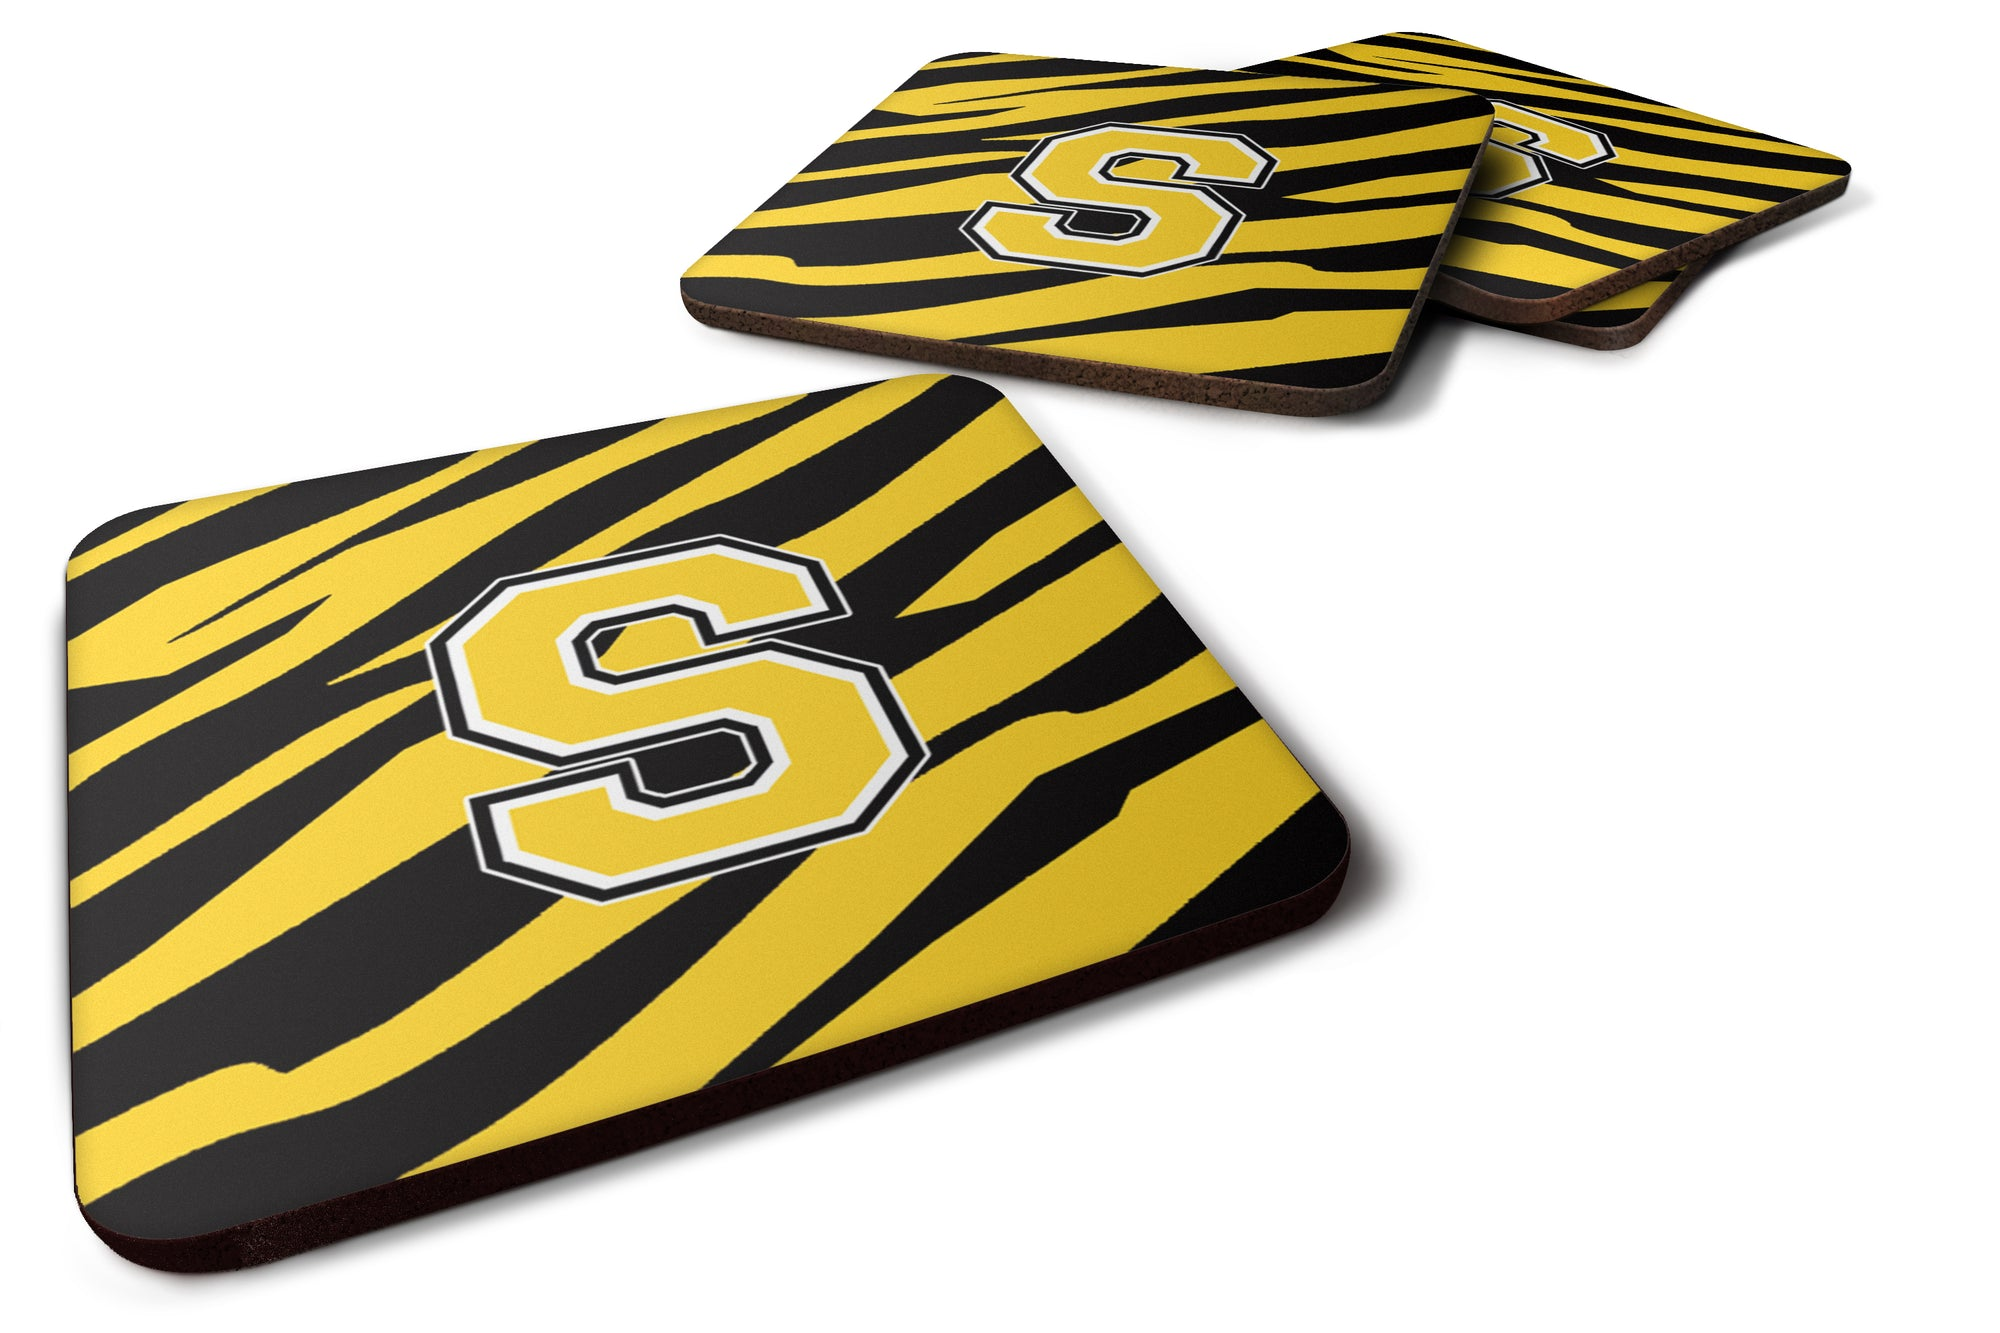 Set of 4 Monogram - Tiger Stripe - Black Gold Foam Coasters Initial Letter S by Caroline's Treasures